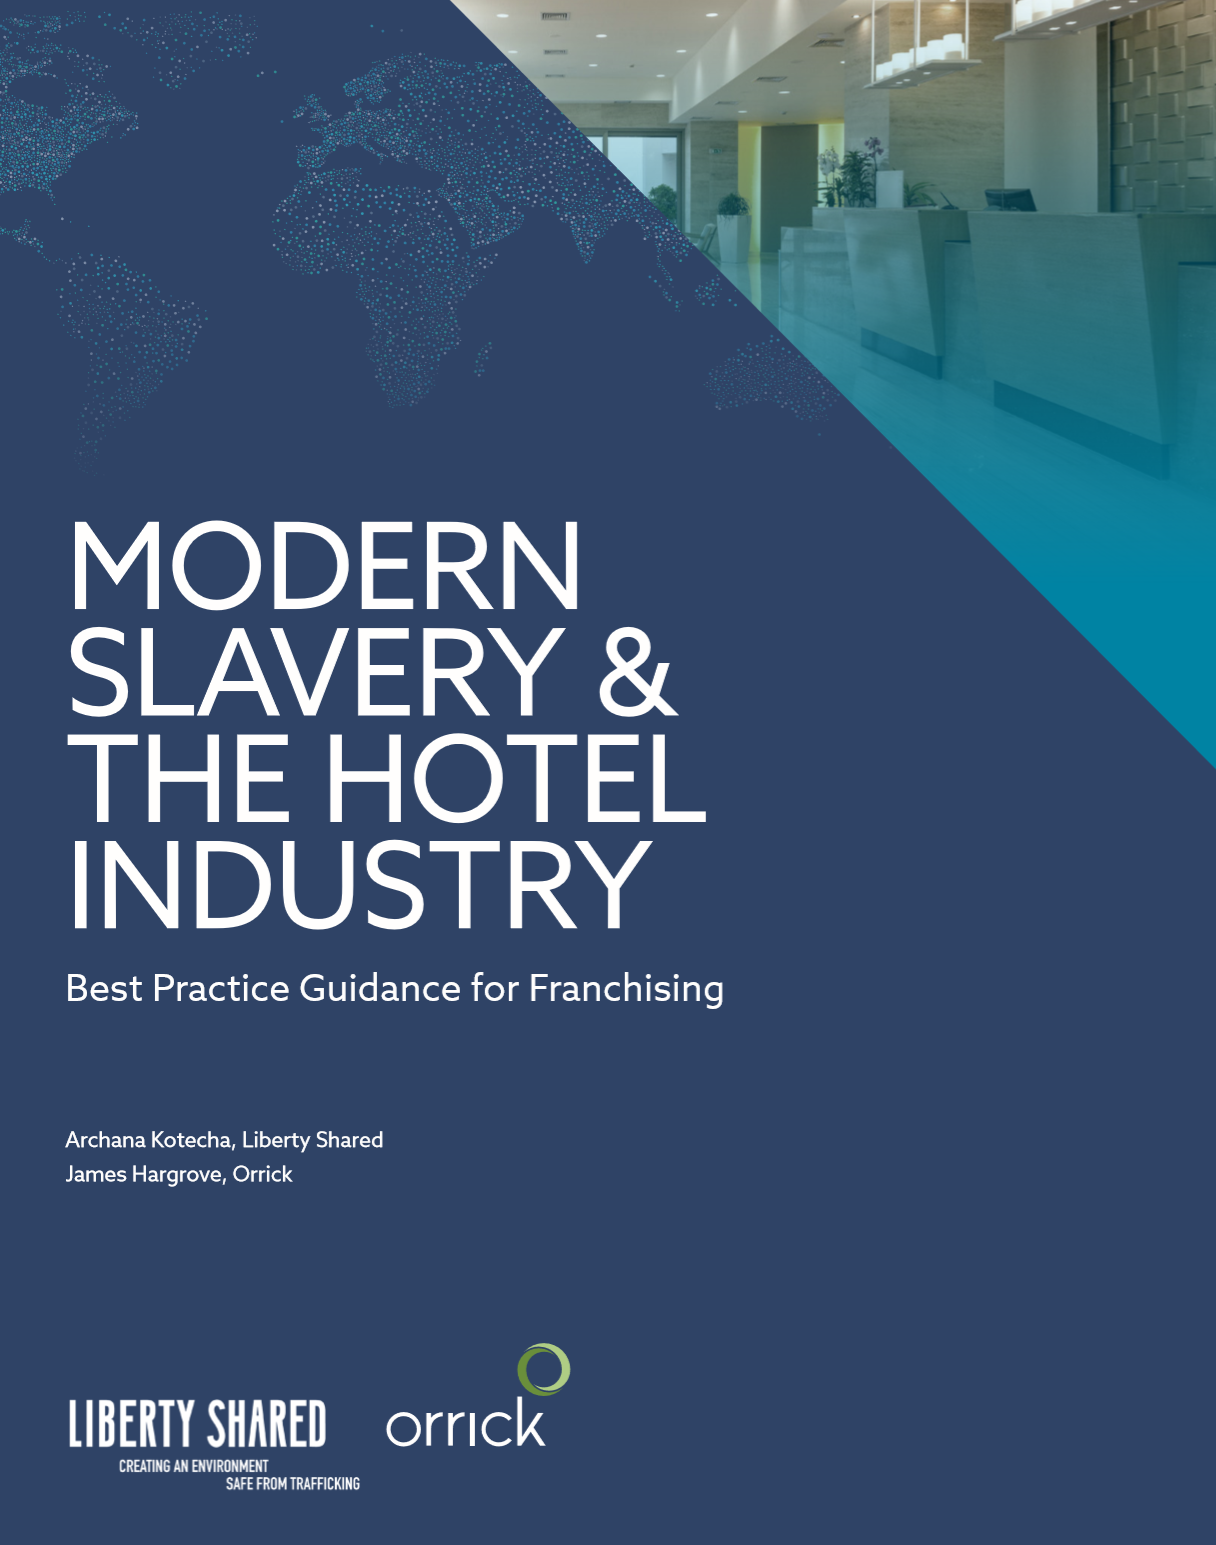 The hotel industry is inherently vulnerable to modern slavery due to the nature of the industry, the web of business relationships connected with each hotel and the consequent needs of each hotel, such as the need for a wide array of reasonably priced services, its seasonality, and labour supply. With the rise of modern slavery and supply chain transparency laws, the hotel industry can no longer look the other way and continue to operate without any accountability. This guide sets out practical solutions aimed at ensuring that a franchisee's operations have the relevant safeguards in place to prevent human trafficking, forced labour and other forms of exploitation. - By: Liberty Shared and Orrick